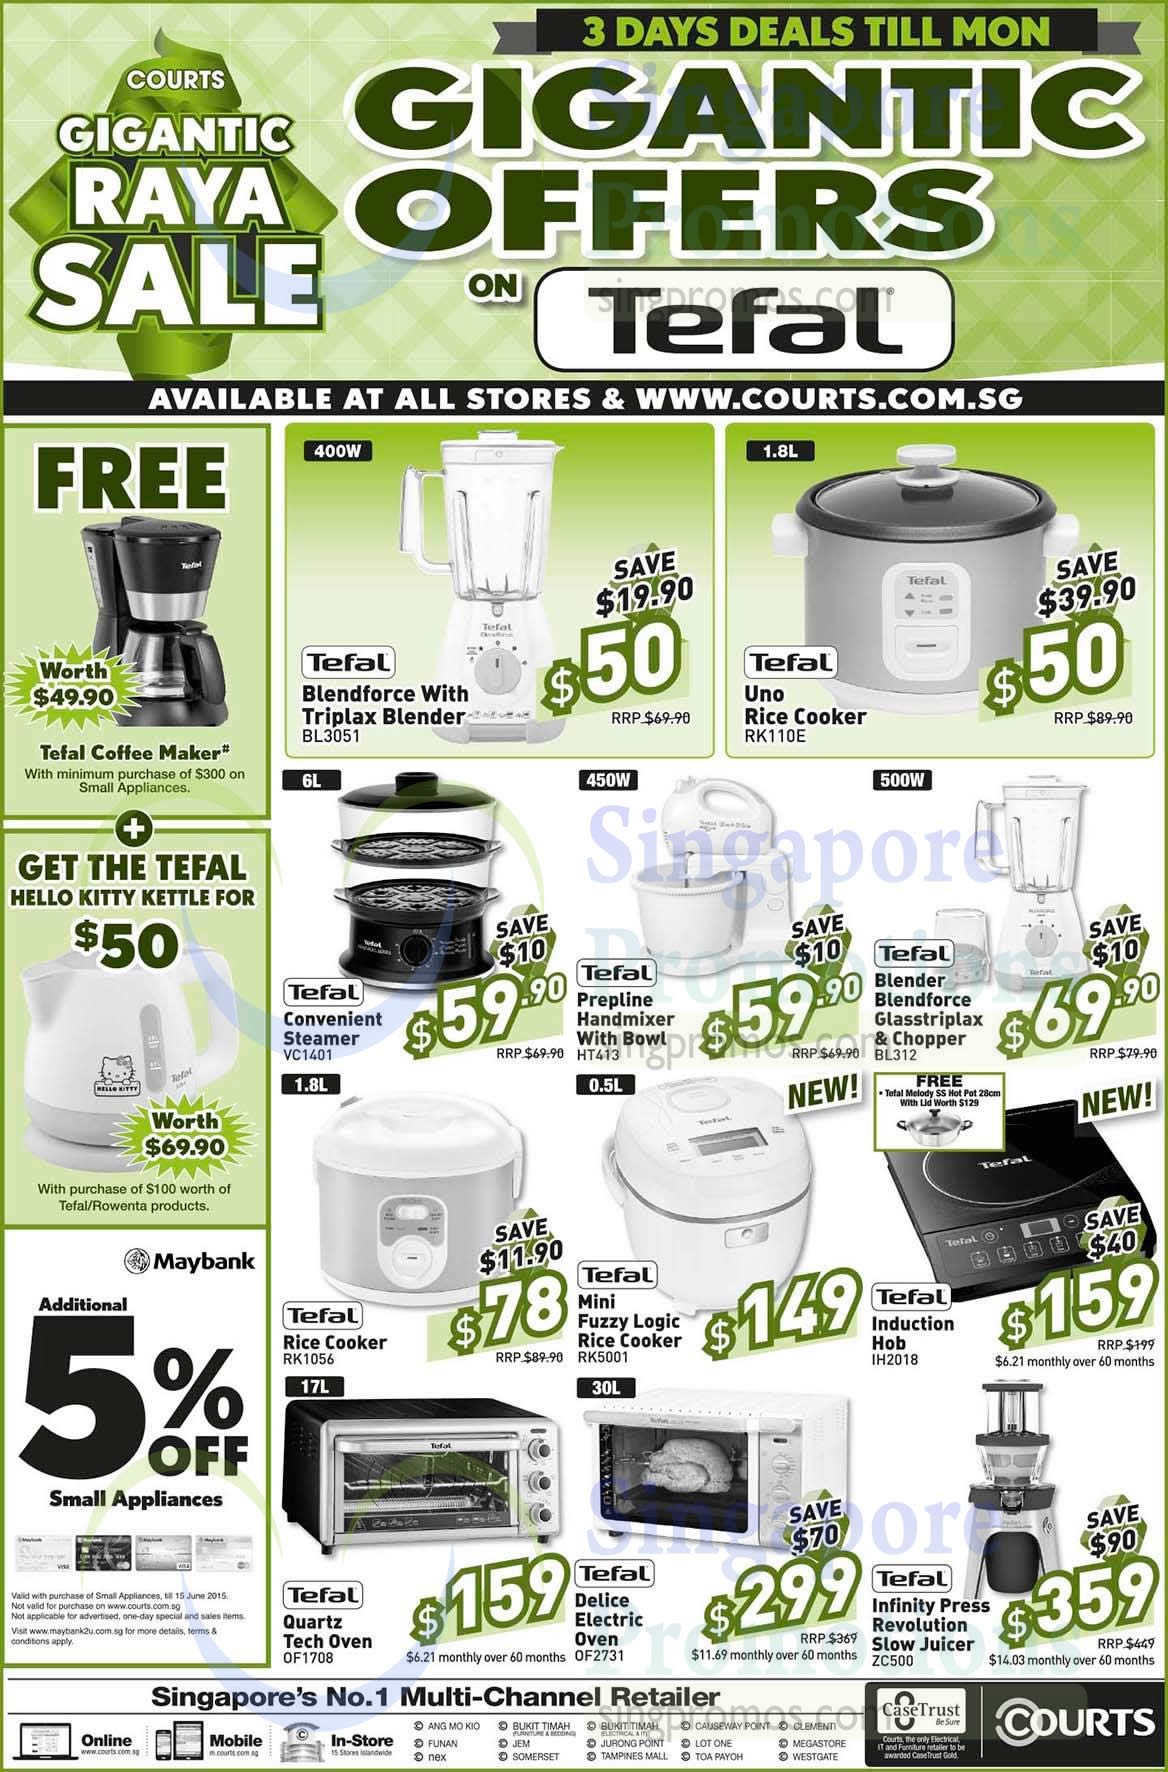 Tefal Kitchen Appliances, Blenders, Rice Cookers, Ovens, Slow Juicer, Steamer, Induction Hob ...